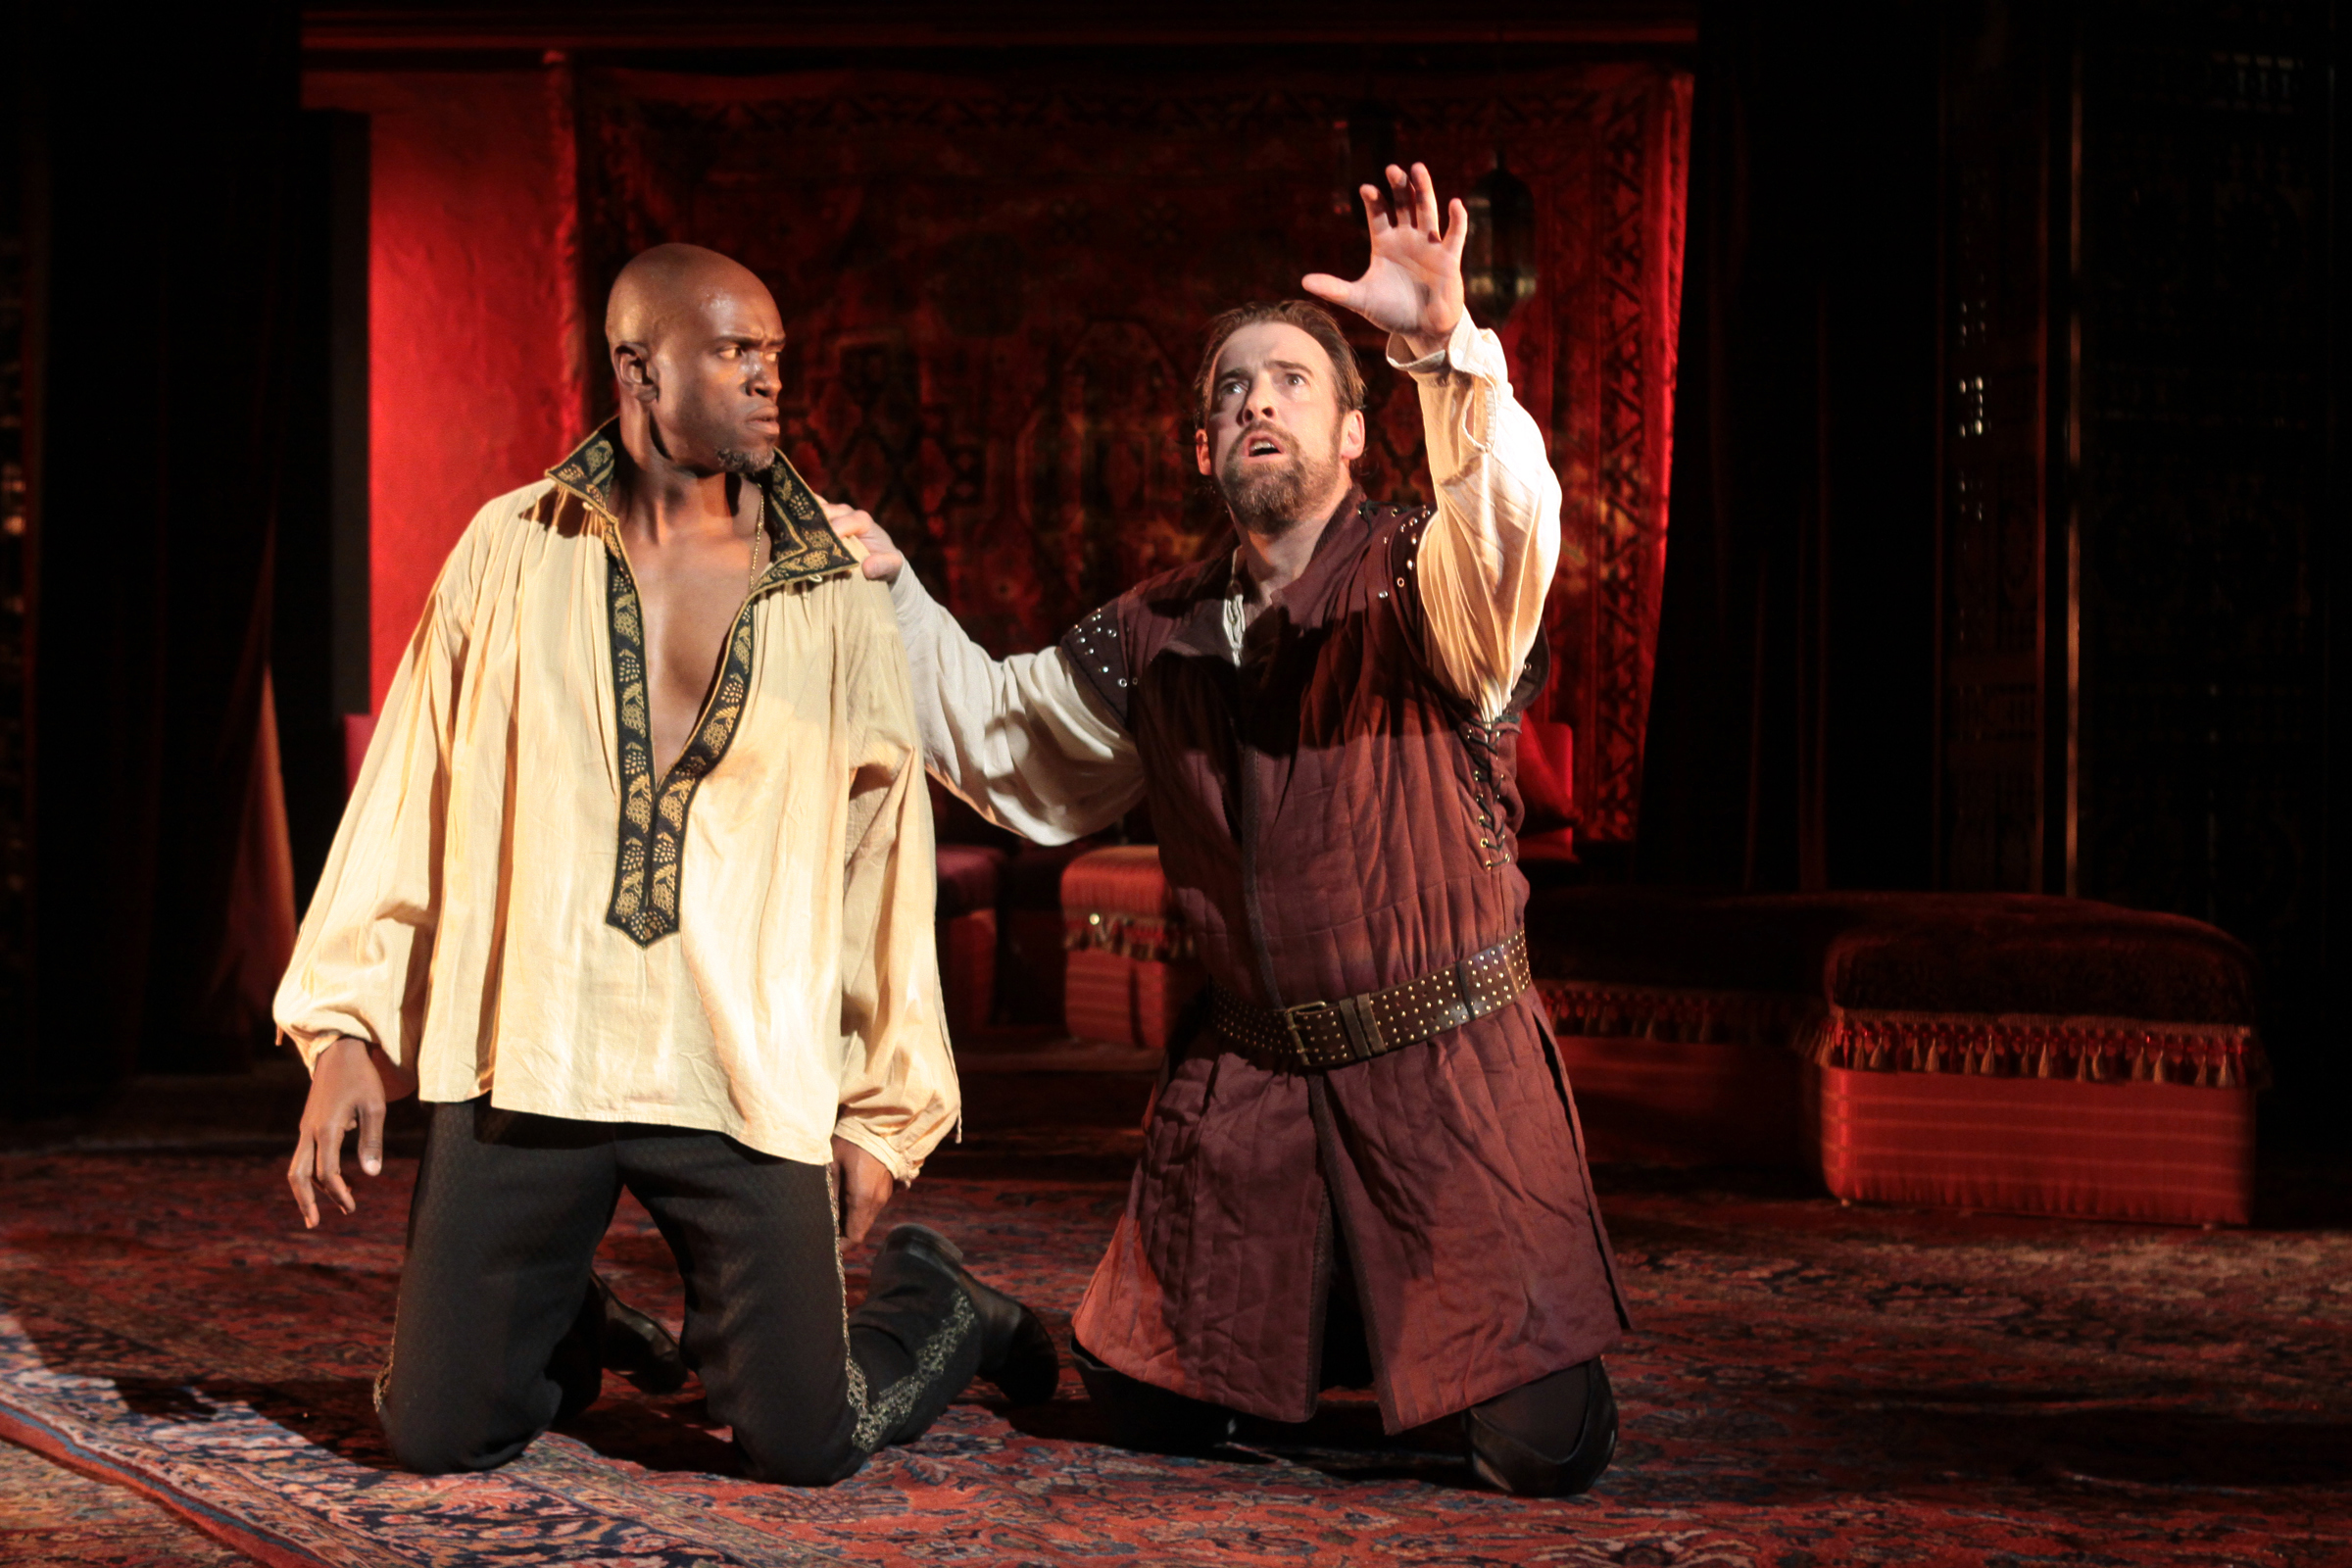 tragic deaths in shakespeares othello essay Free essay on othello the greatest shakespearean tragedy available totally free at echeatcom, the largest free essay community.